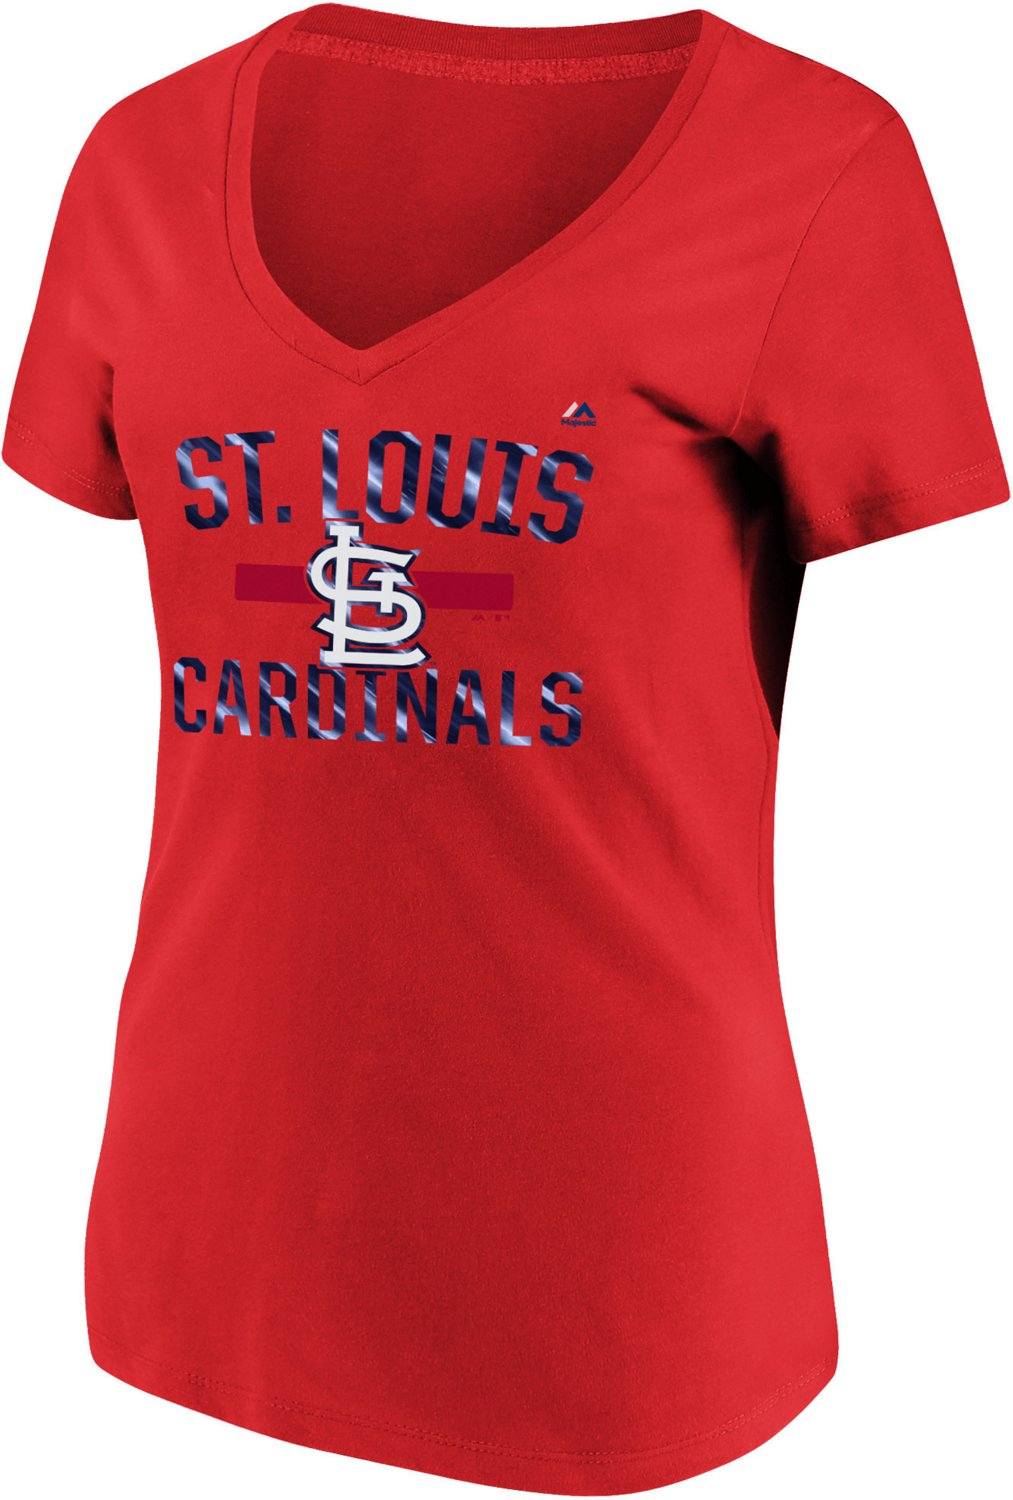 4093e7c5b7f Display product reviews for Majestic Women s St. Louis Cardinals Relentless  Attack T-shirt